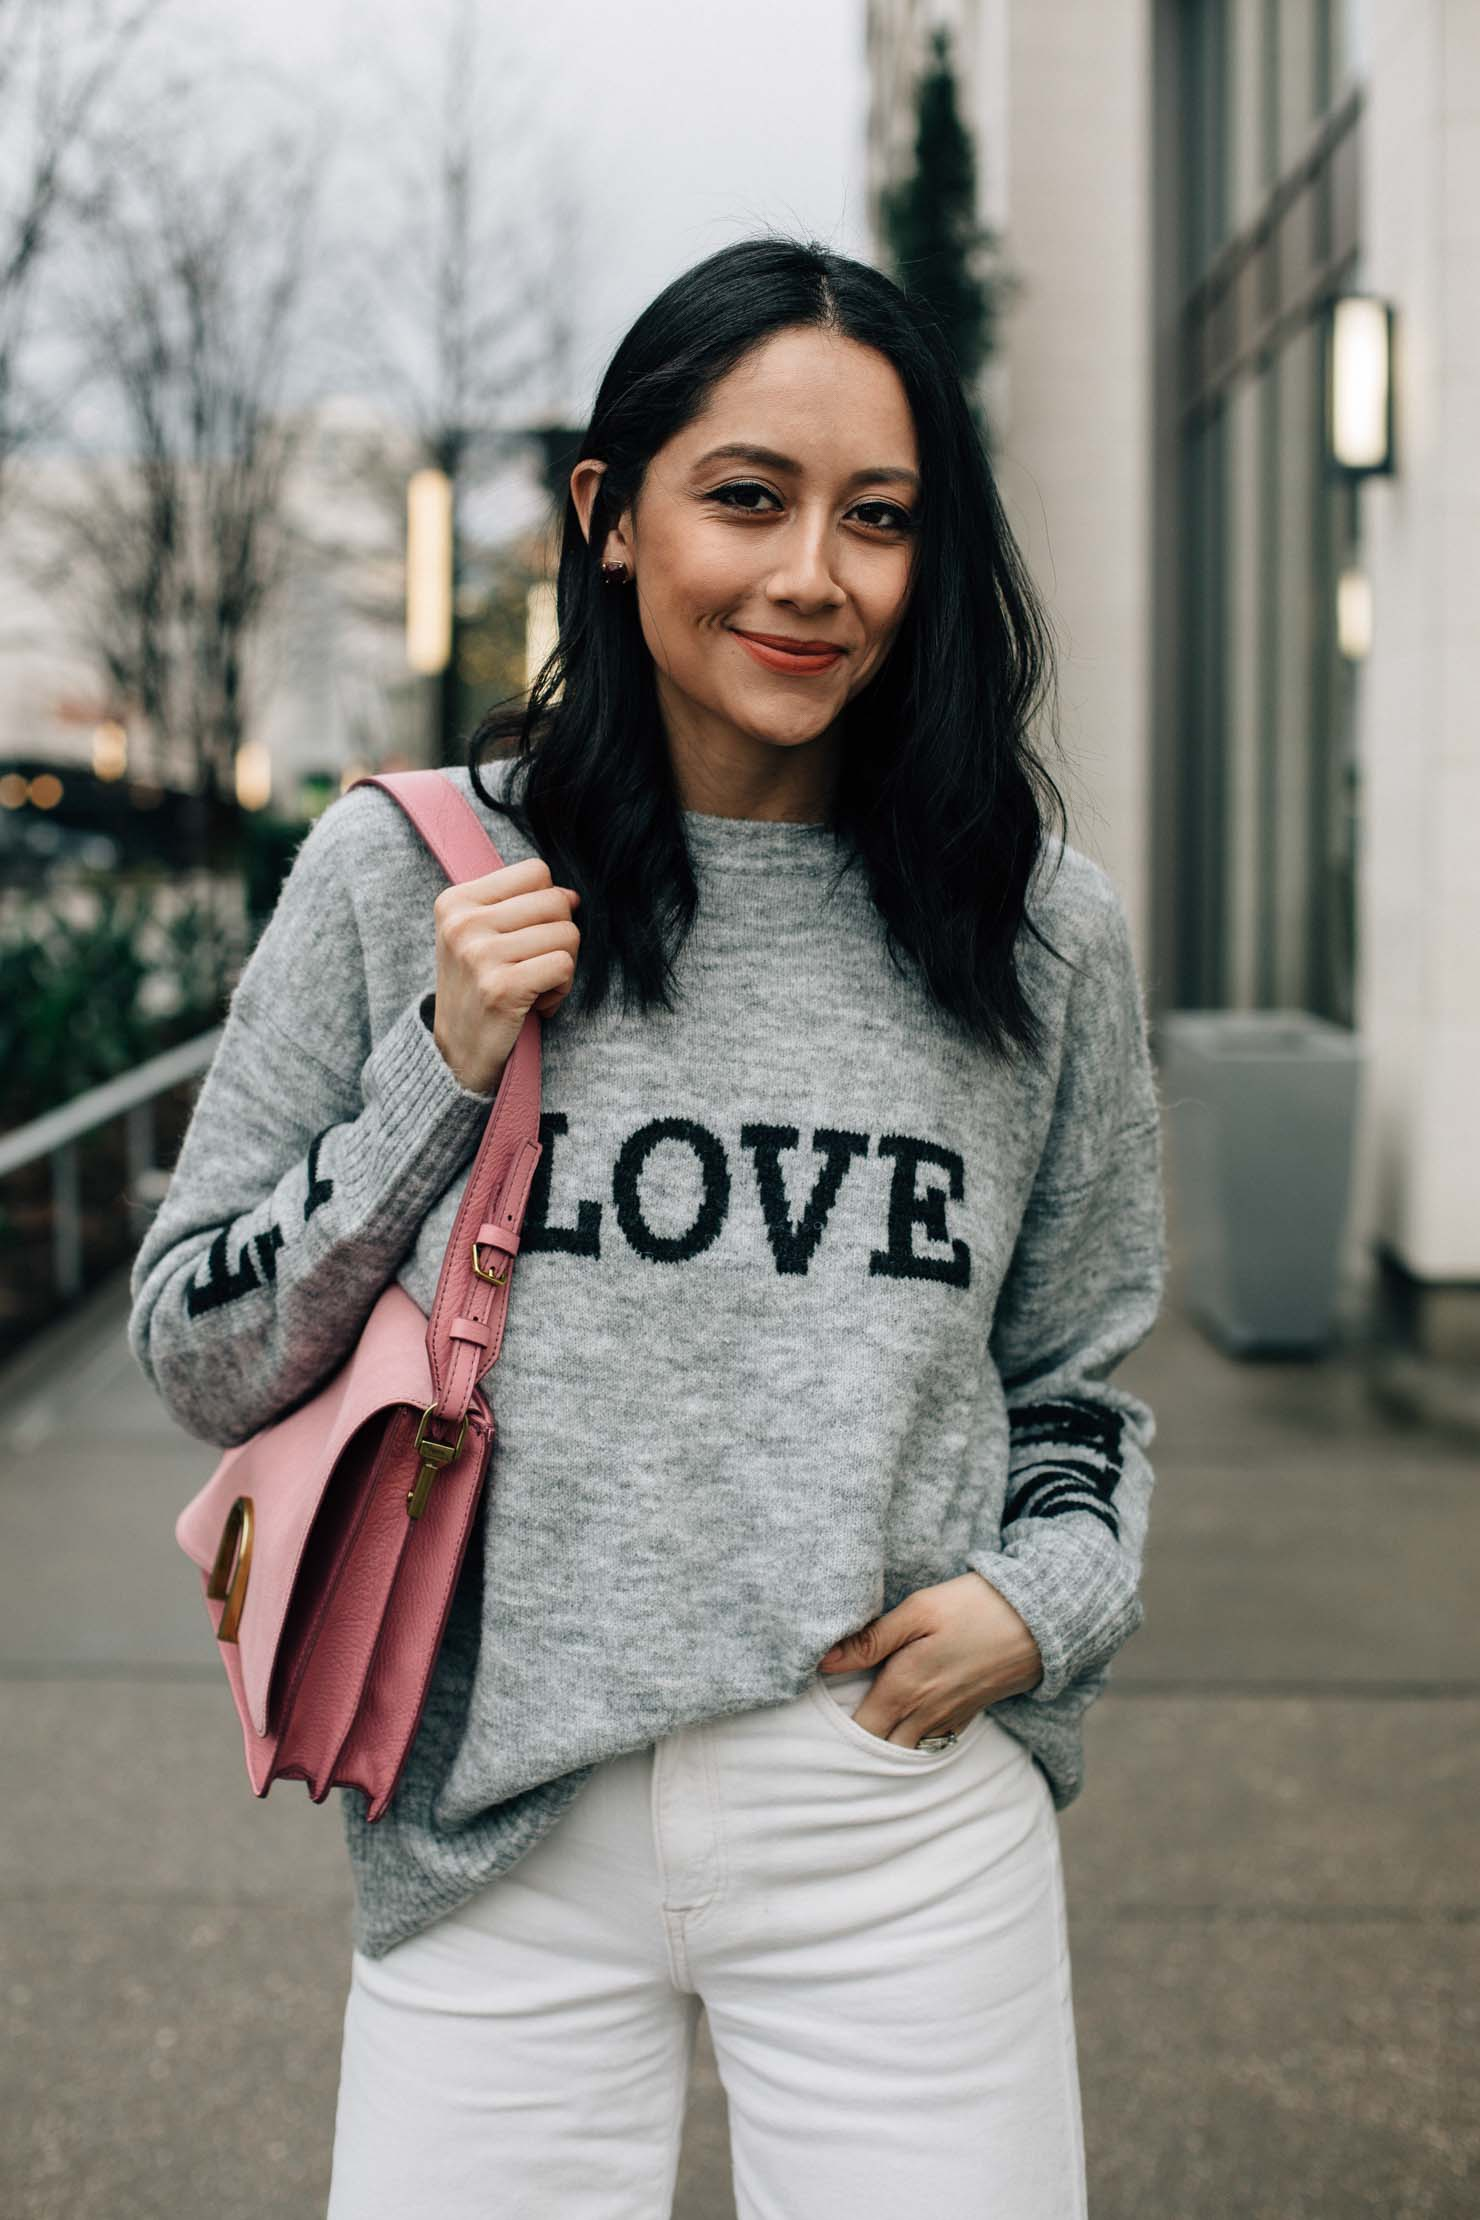 H&M Love printed sweater | Pink Fossil Bag |Effortless Outfit | Casual Valentines Day outfit